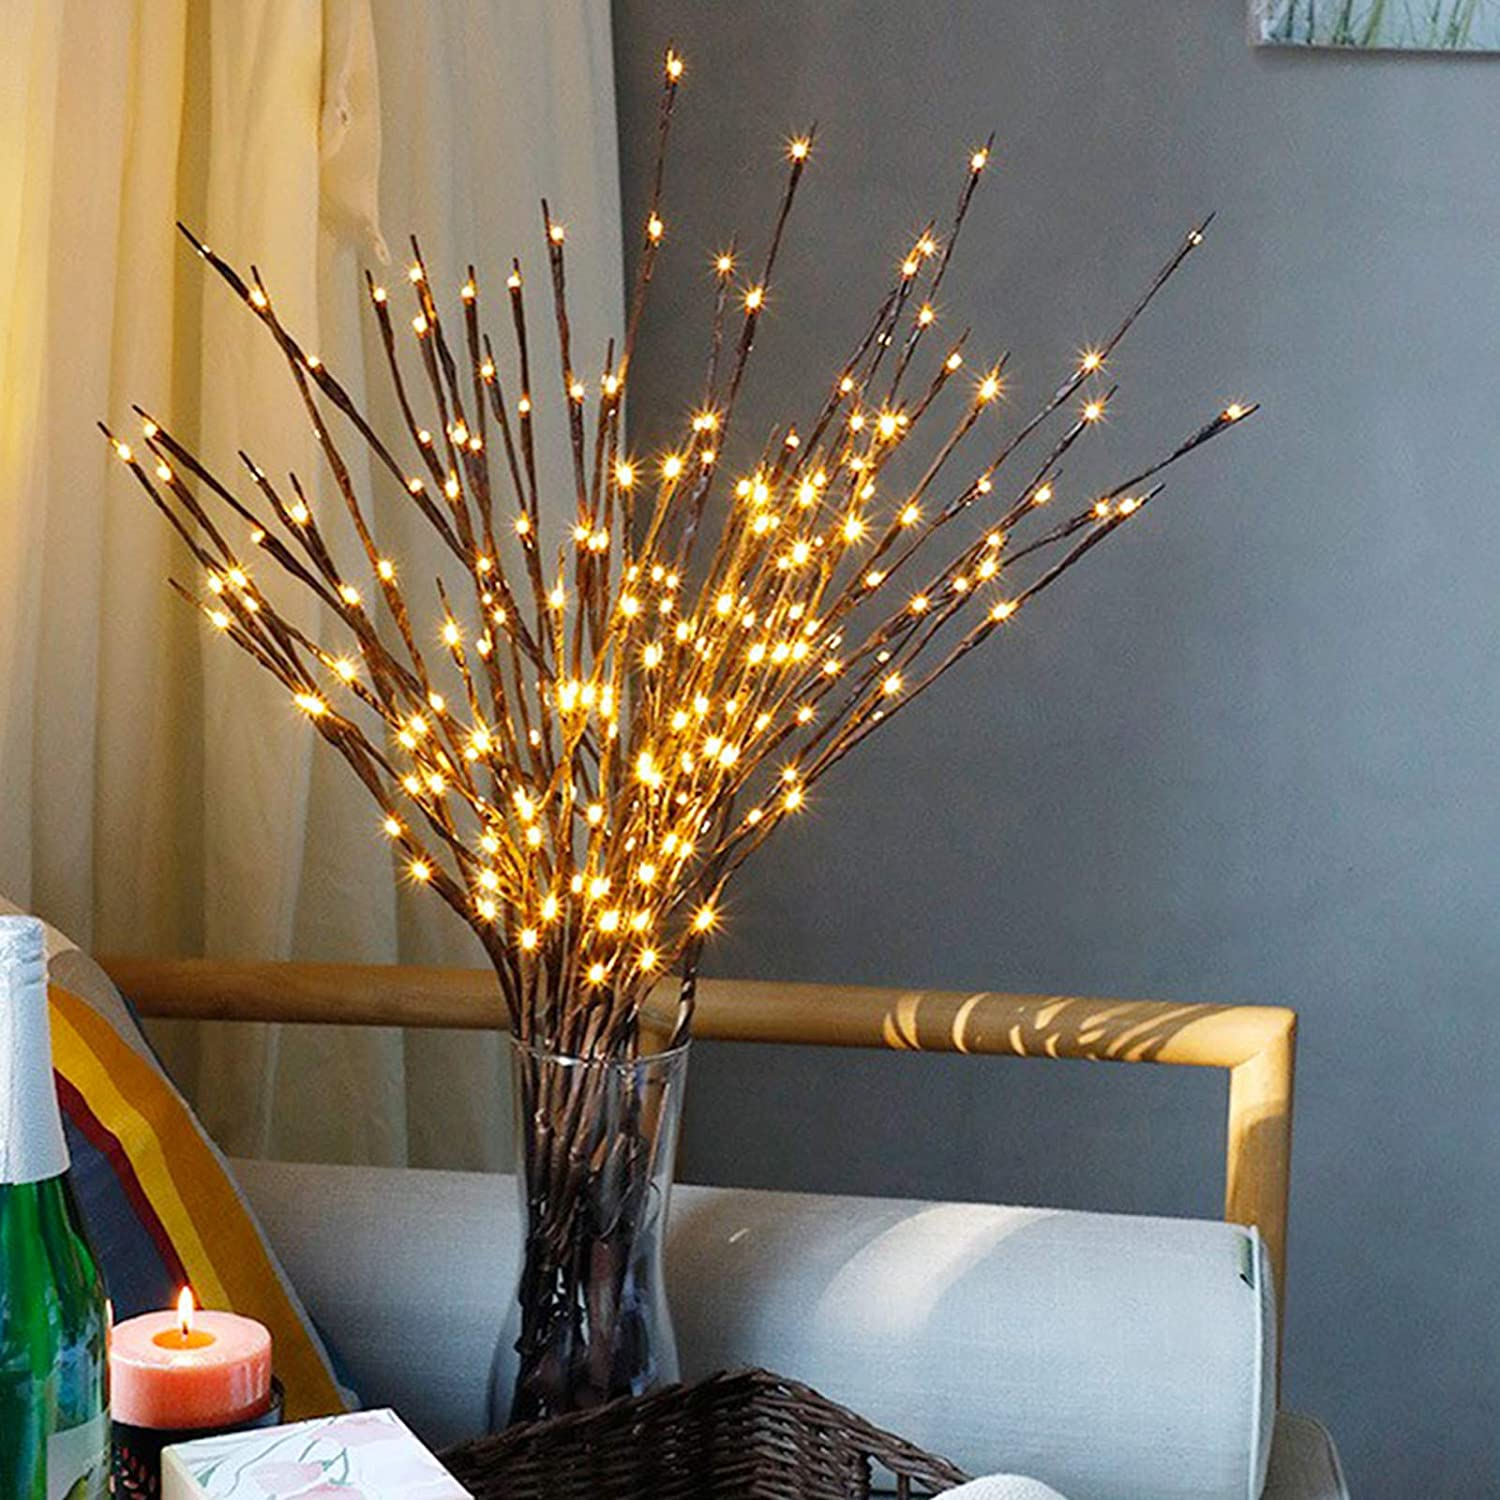 FeiLix Artificial Branches with Lights 3pcs 27.5 Inches 60 LED Lights USB Operated Home Artificial Branches Decoration for Room Wedding Party Christmas Indoor Outdoor